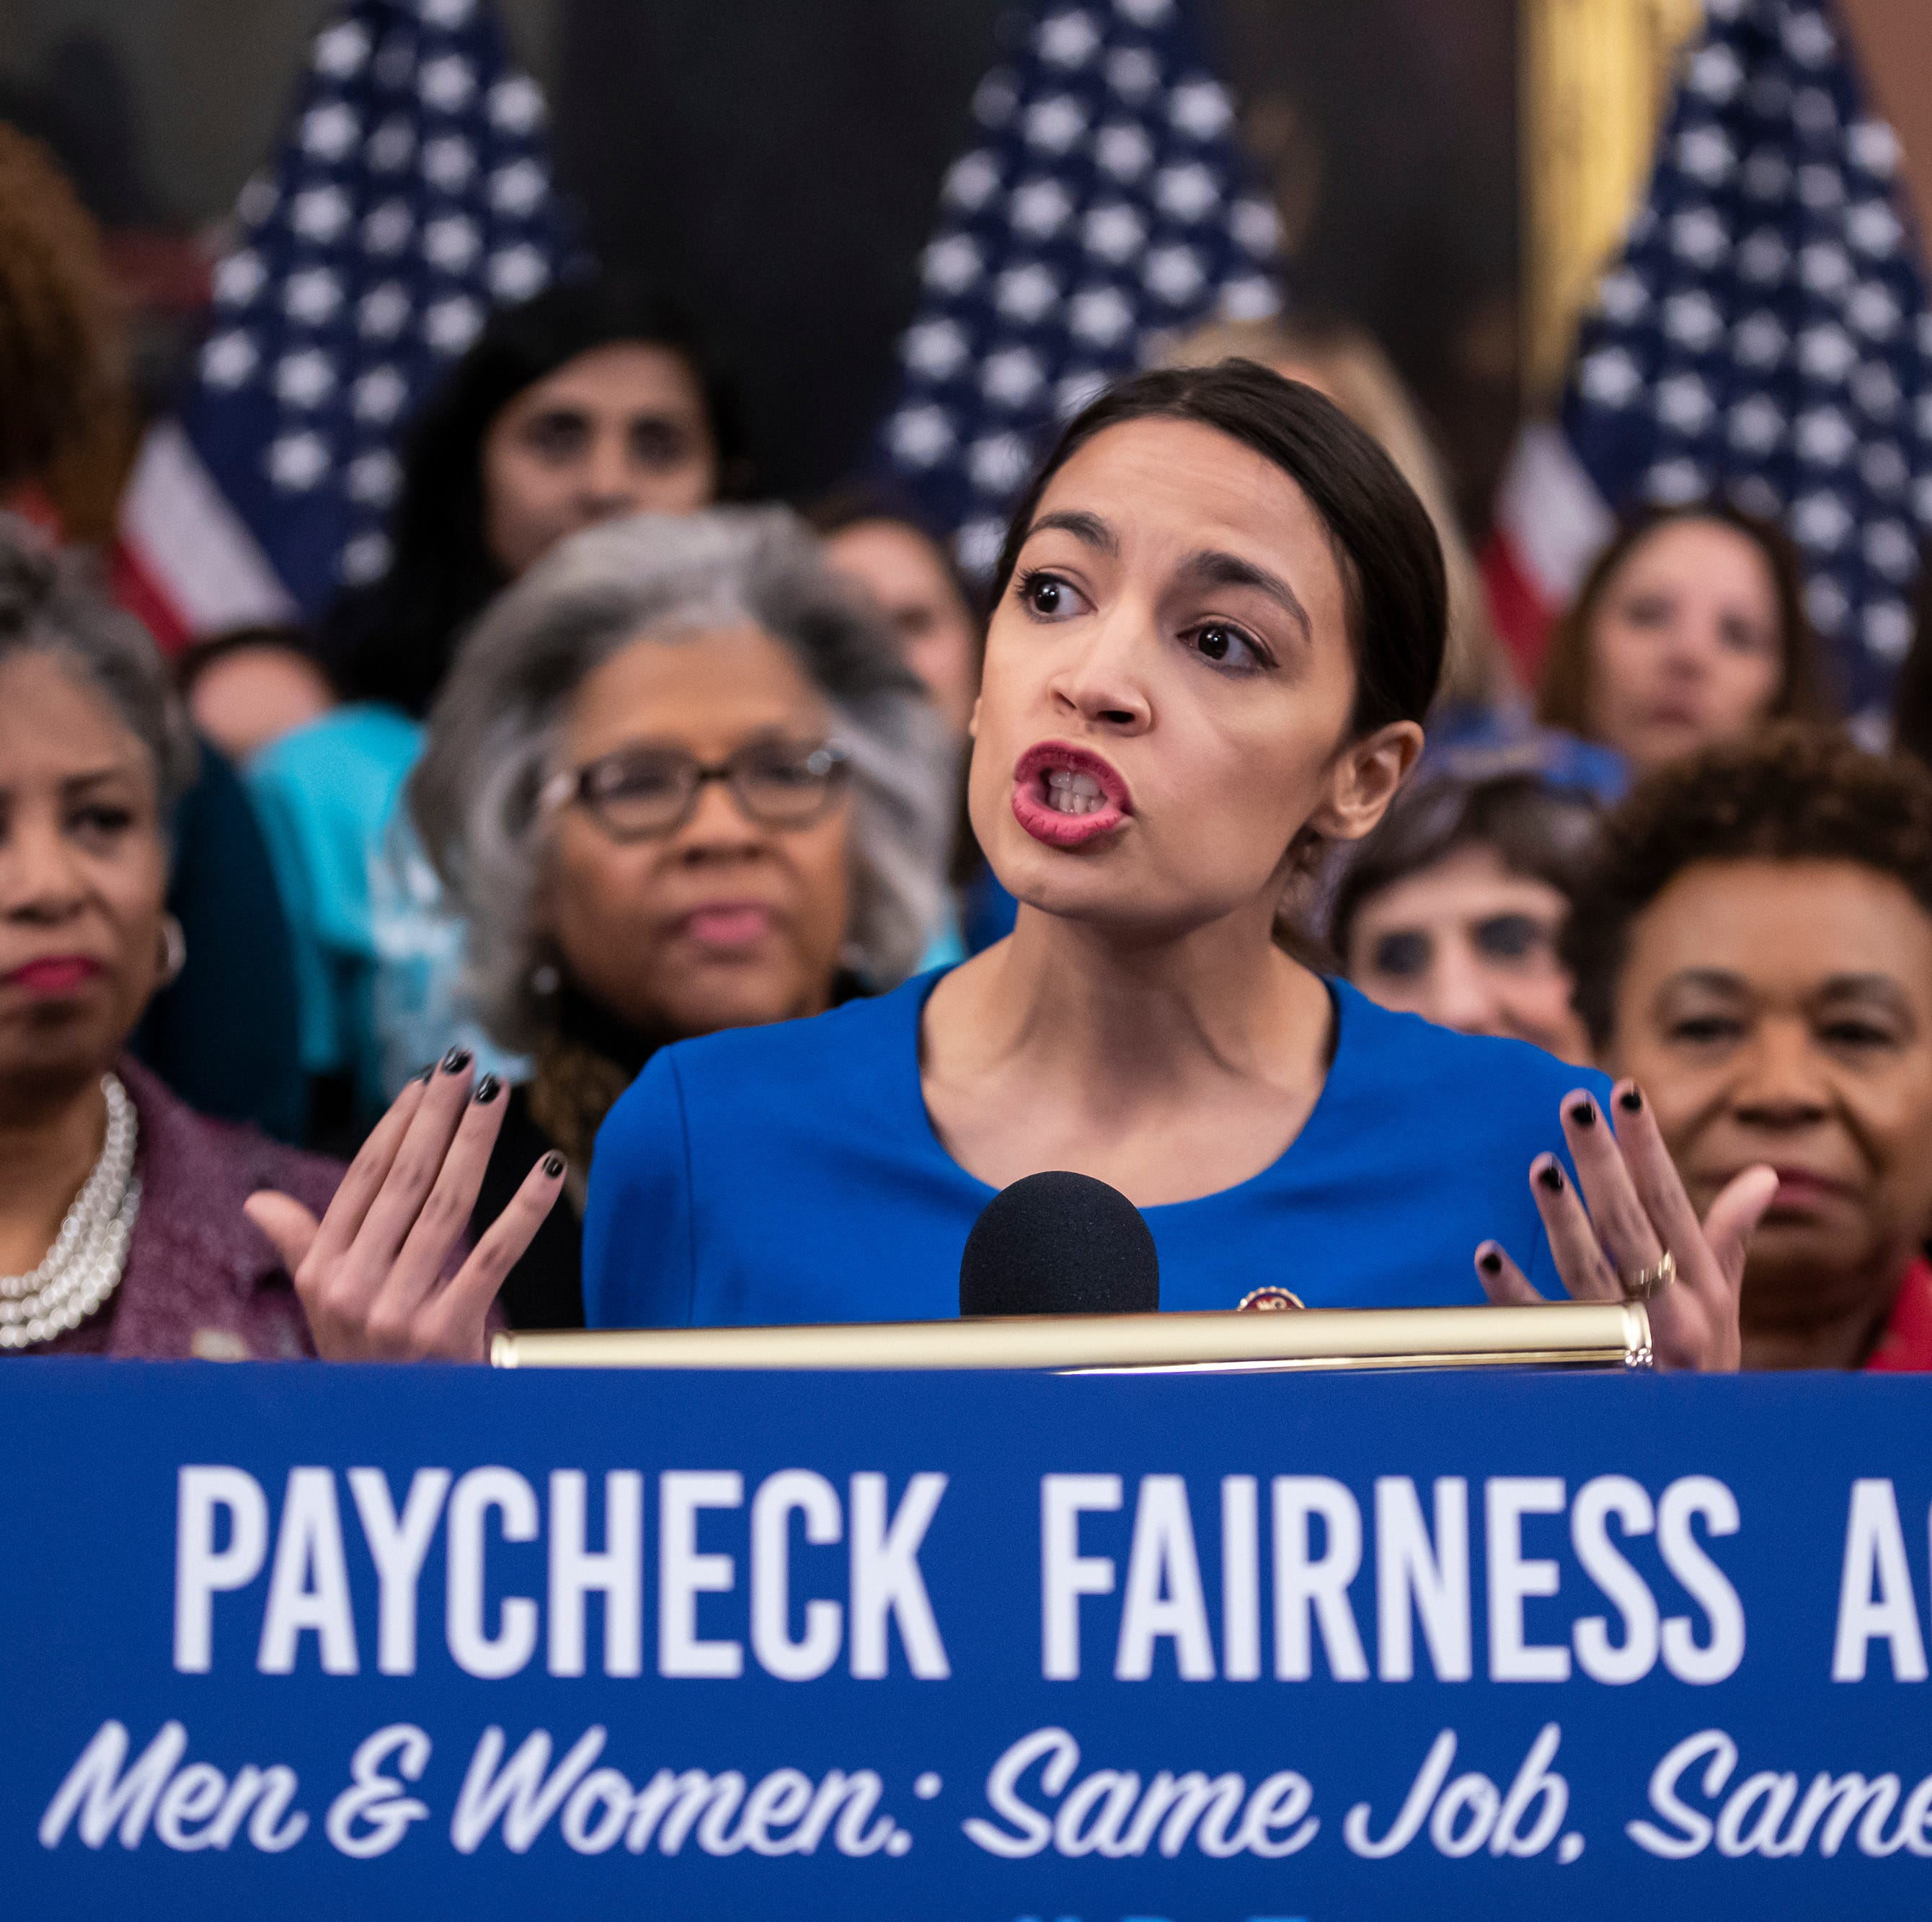 Amazon blowup shows Ocasio-Cortez is an economic illiterate